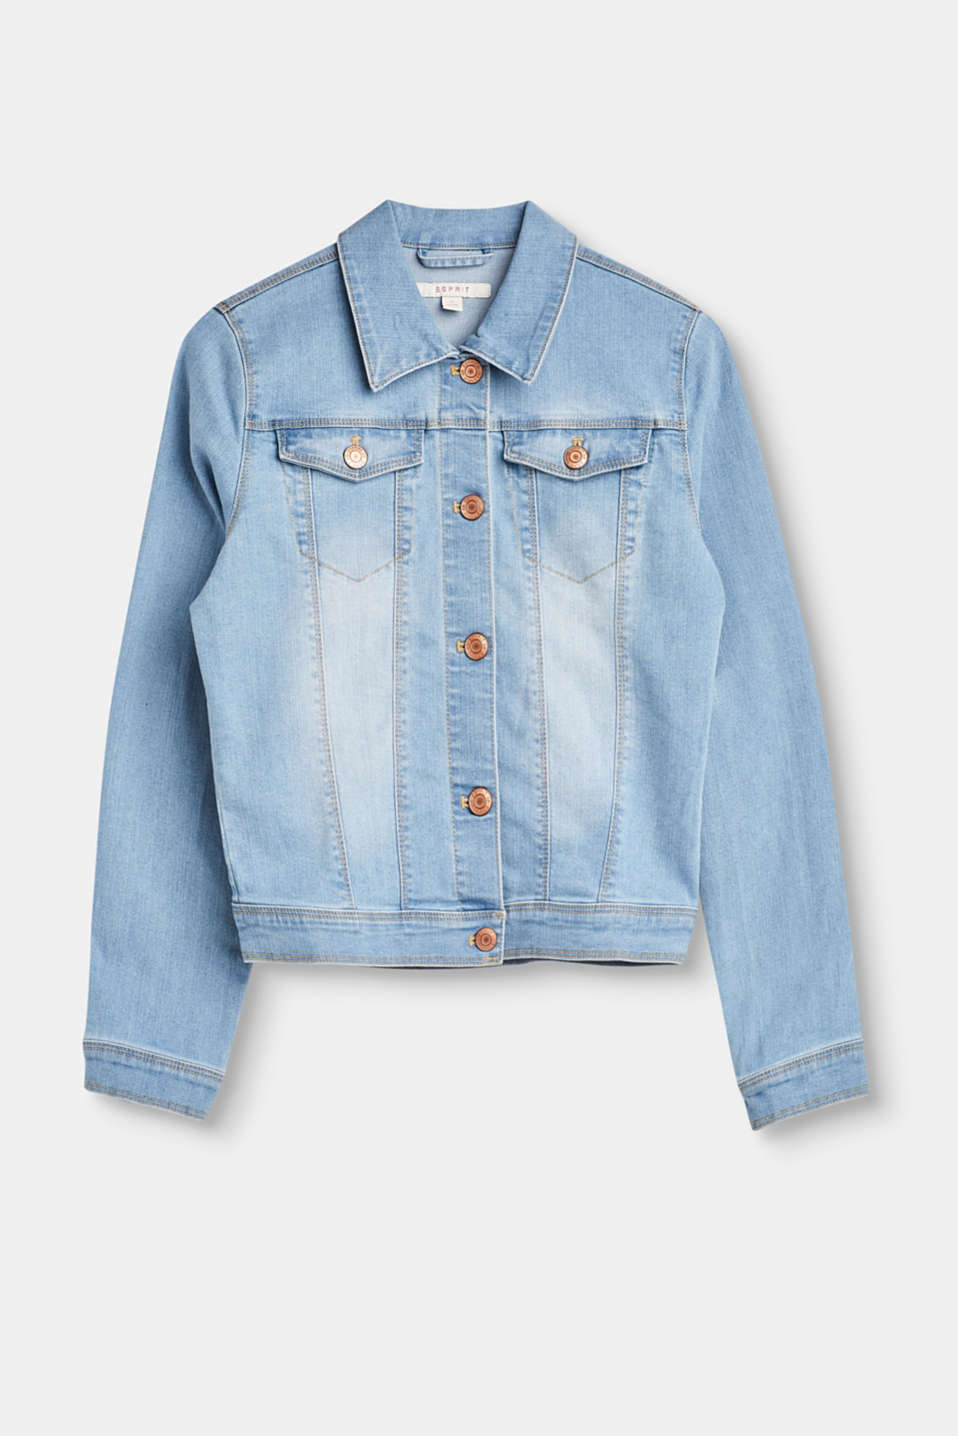 This denim jacket in a pale wash with added stretch is just the right basic piece for light outfits for kids.